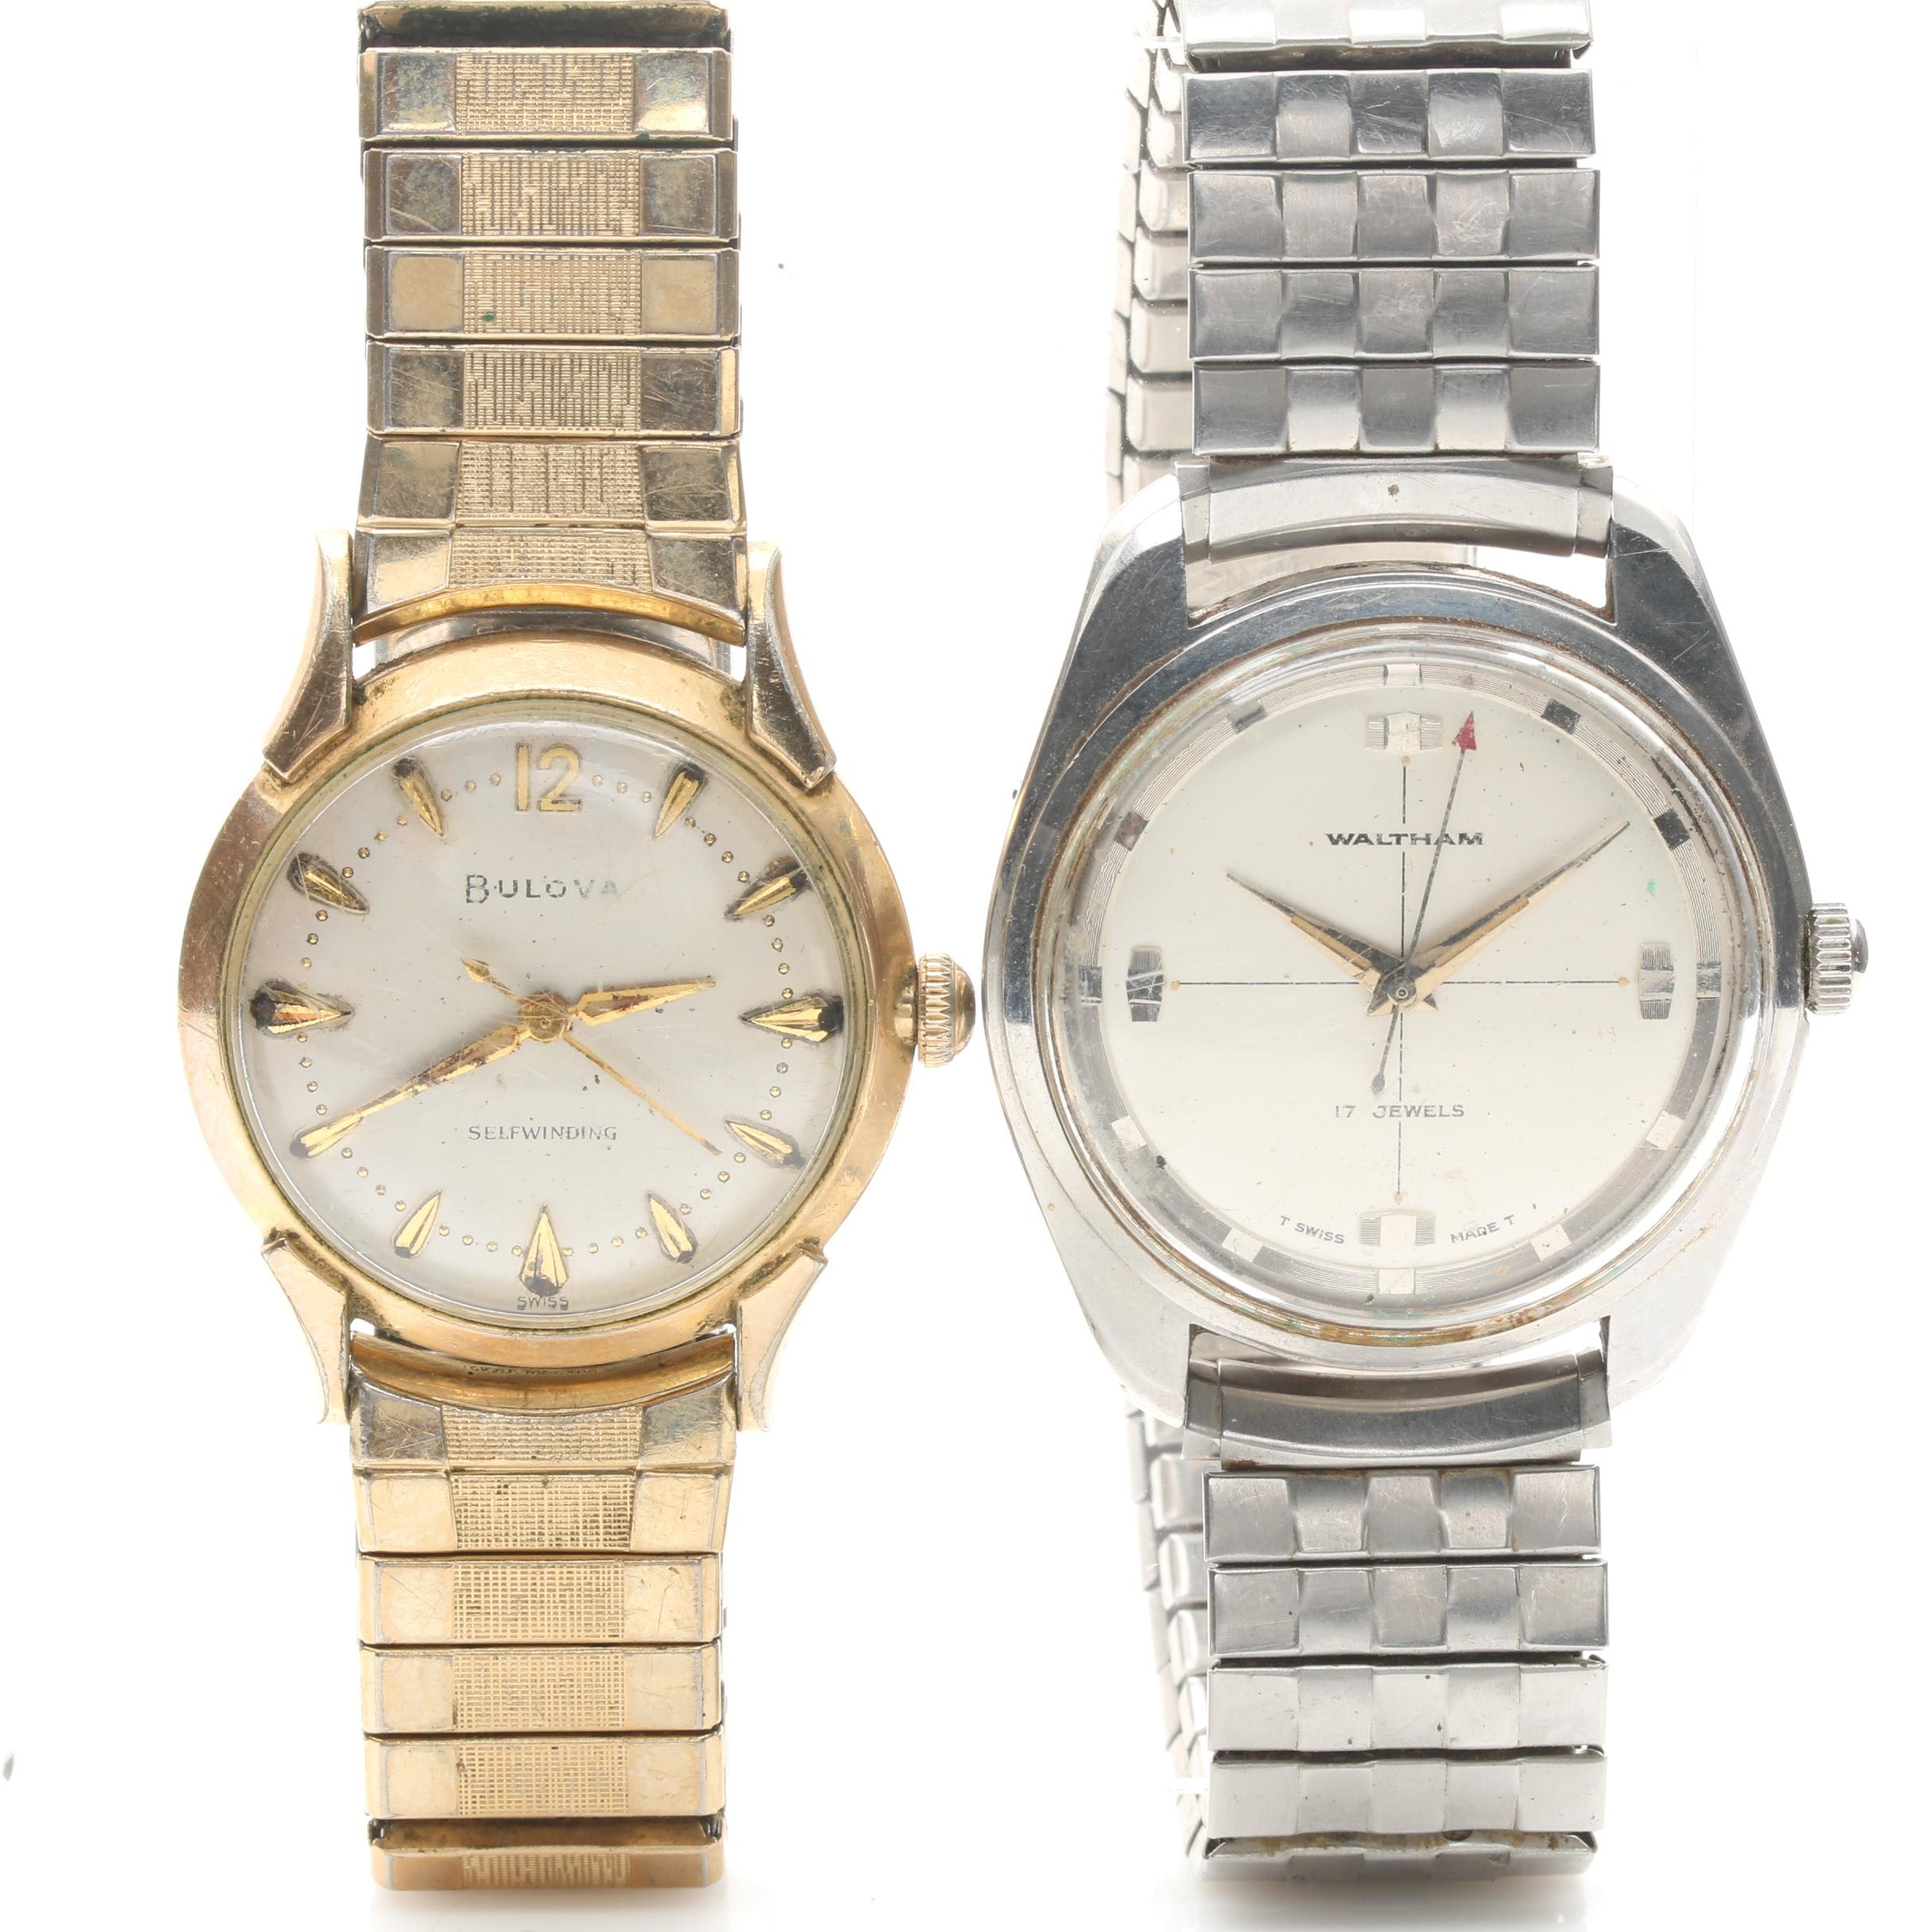 Waltham Stainless Steel and Bulova Gold Plate Wristwatches